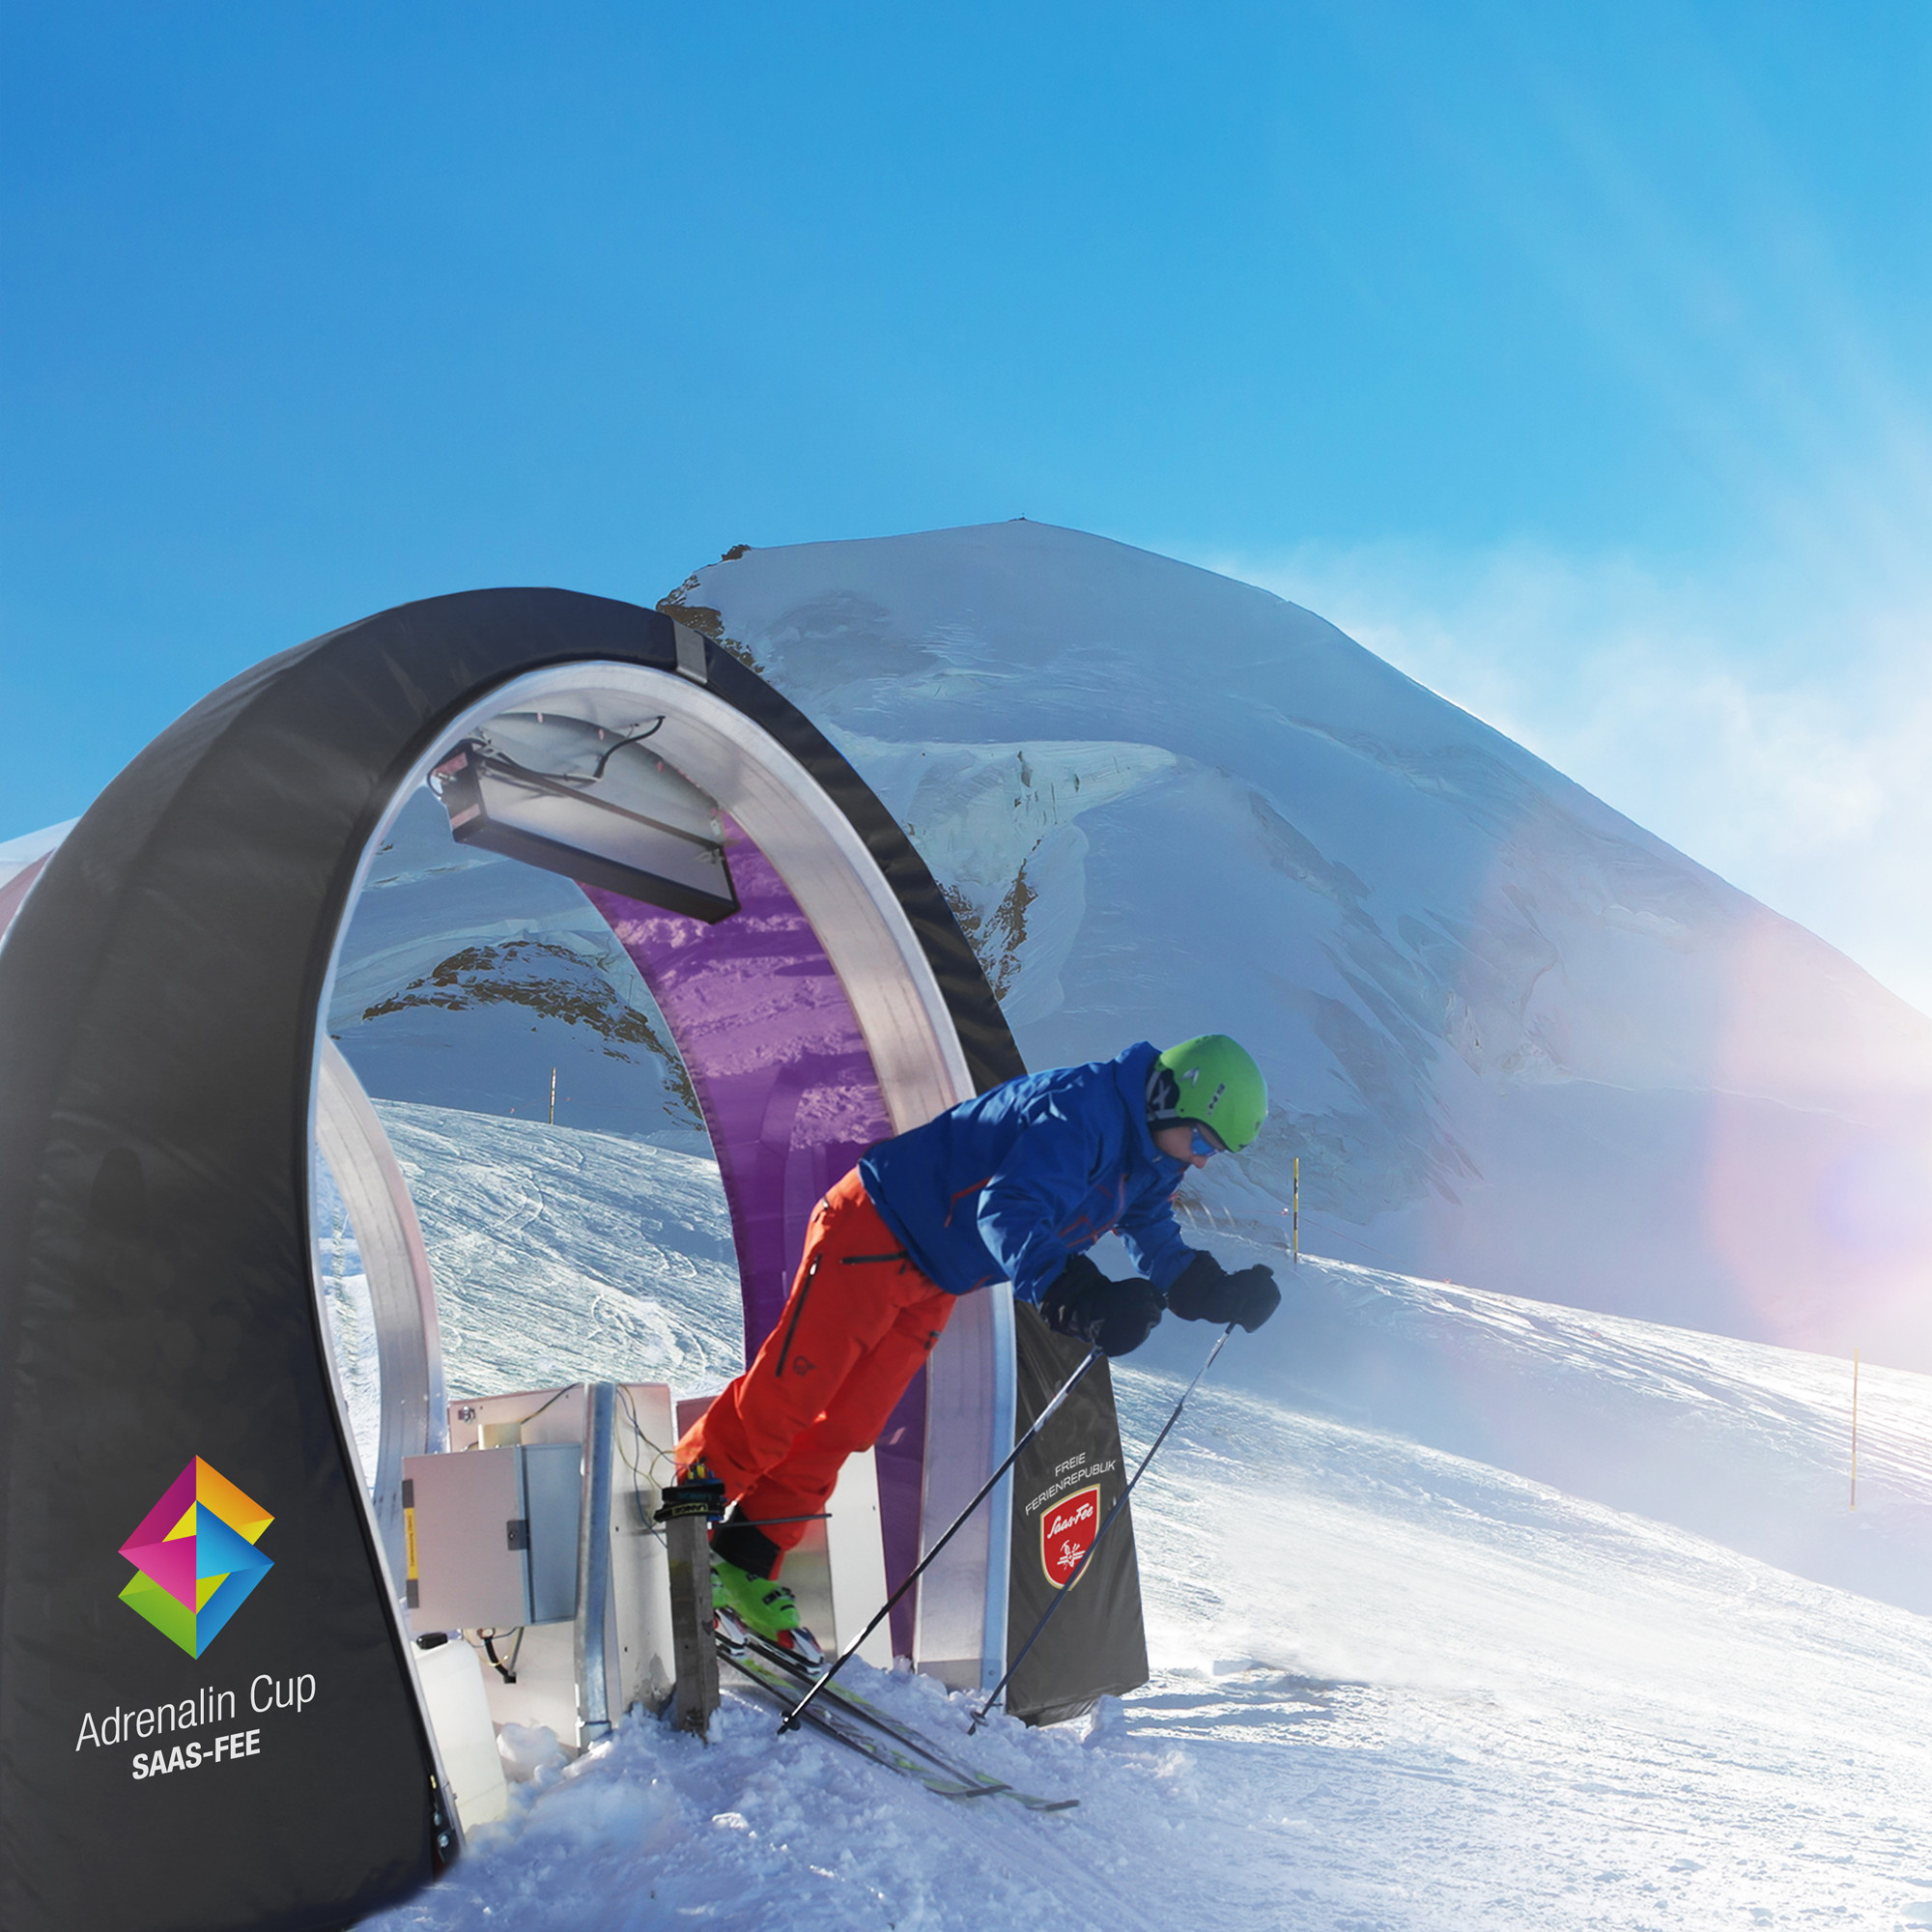 Adrenalin Cup in the Free Republic of Holidays Saas-Fee